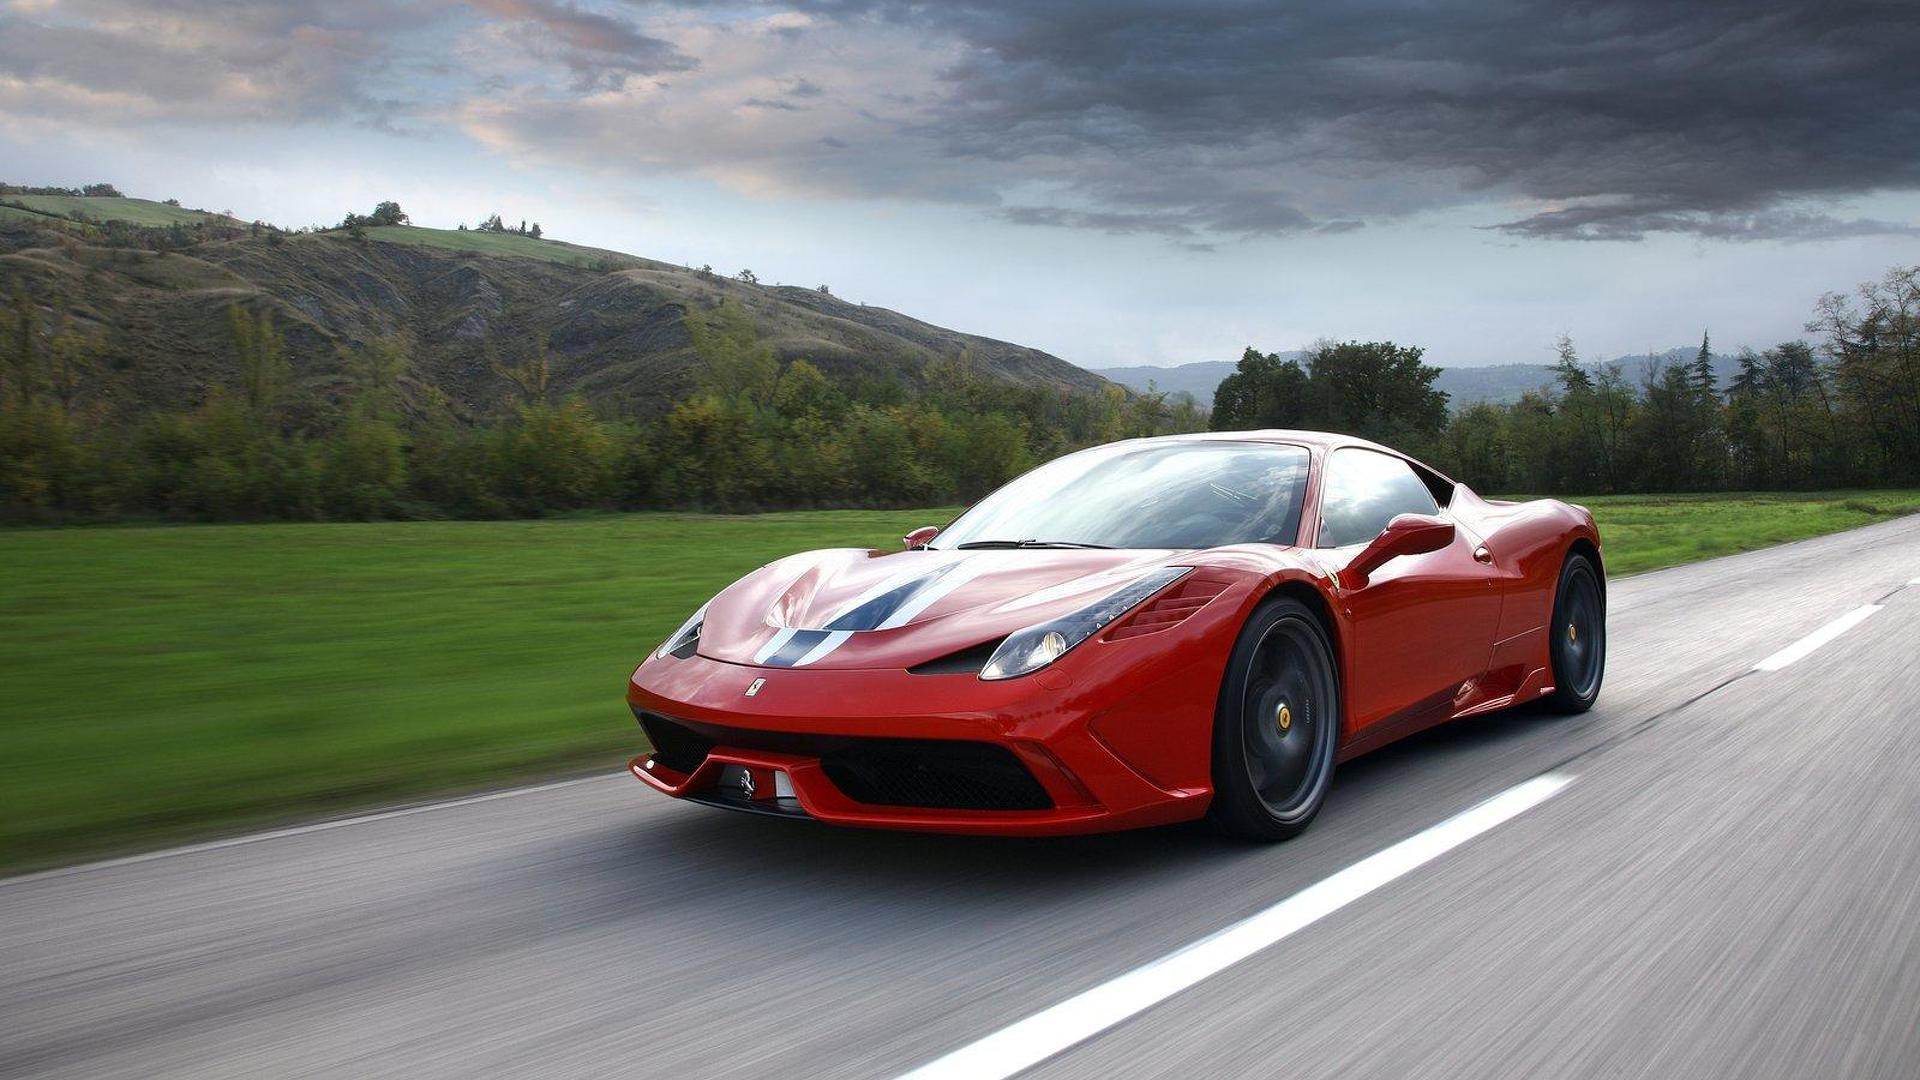 Ferrari 458 Speciale an instant hit, first year of production sold out - report